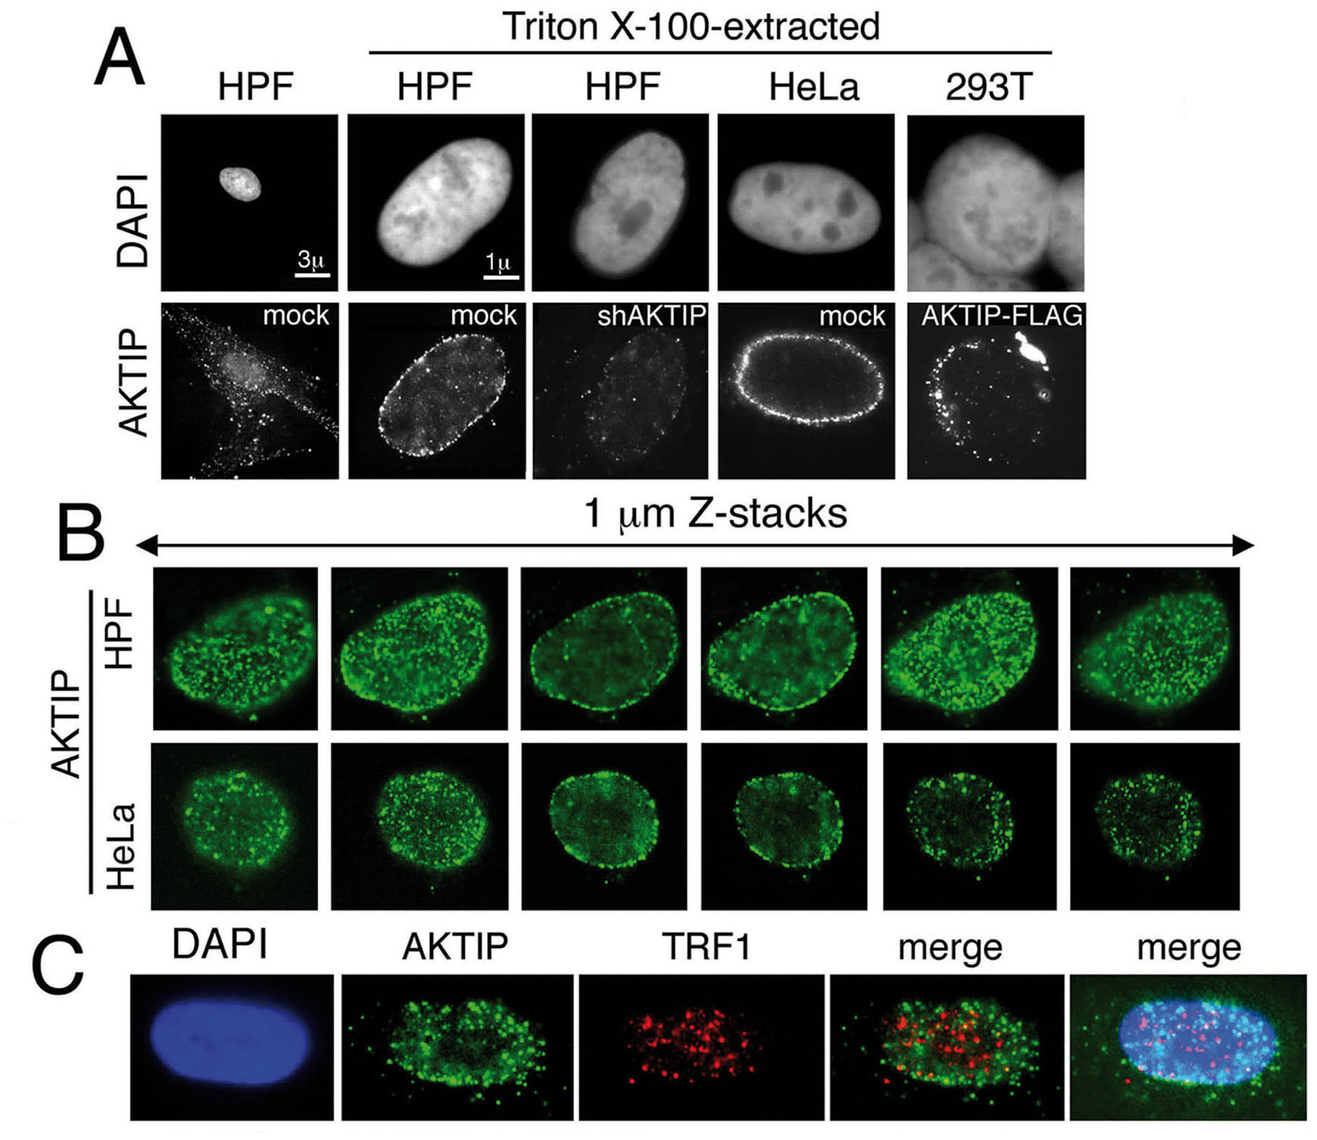 AKTIP localizes at the nuclear periphery.